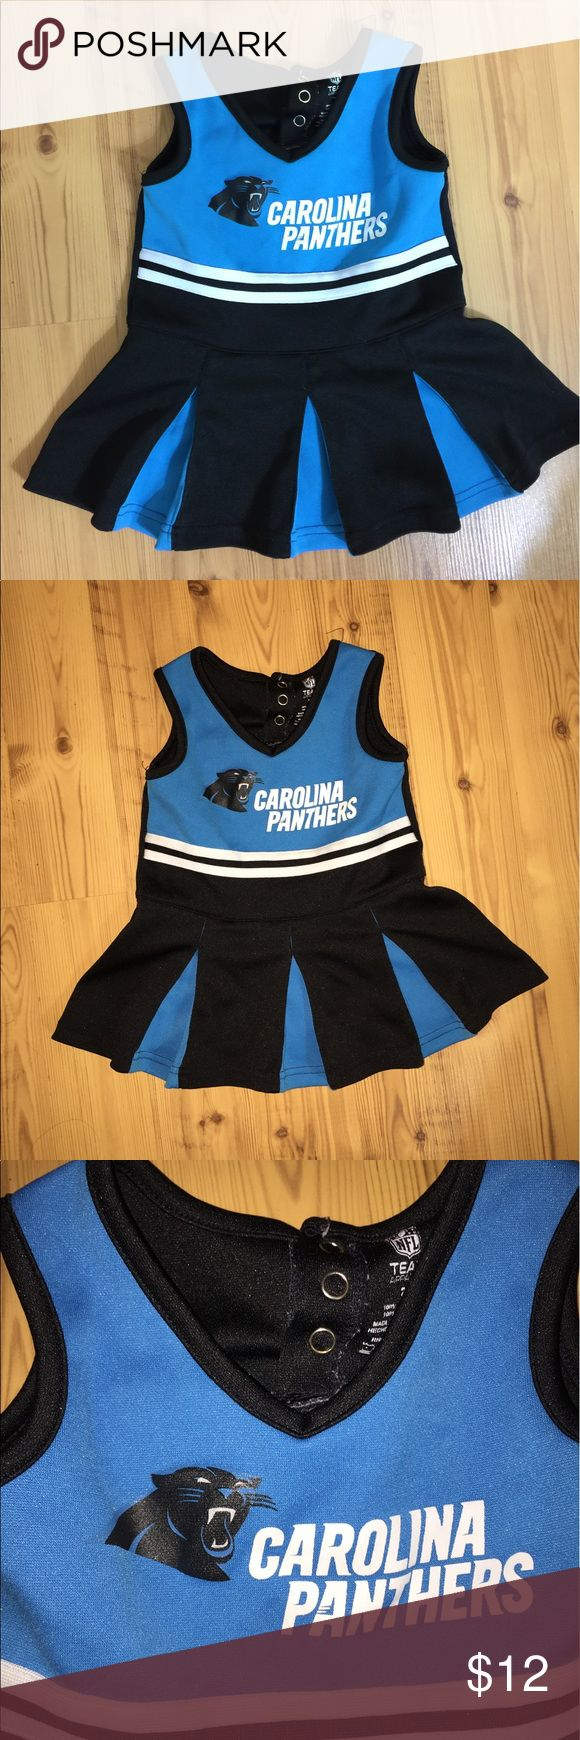 Size 2t Carolina Panthers cheerleader outfit Size 2t cheerleader dress without matching diaper cover, in Good condition with some wear Dresses